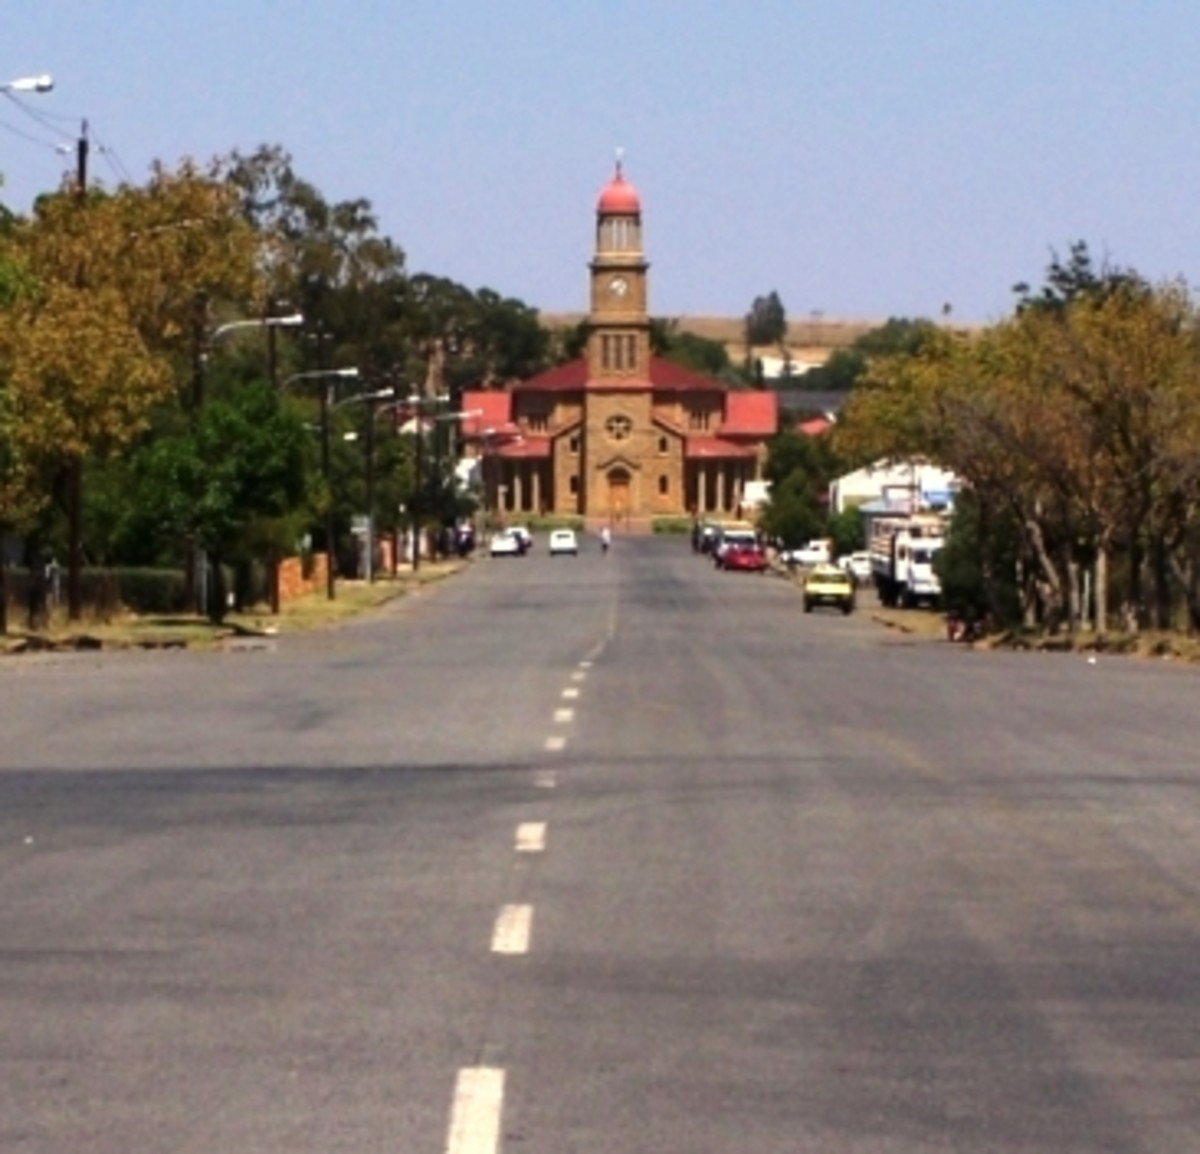 Steynsrus, Free State, South Africa